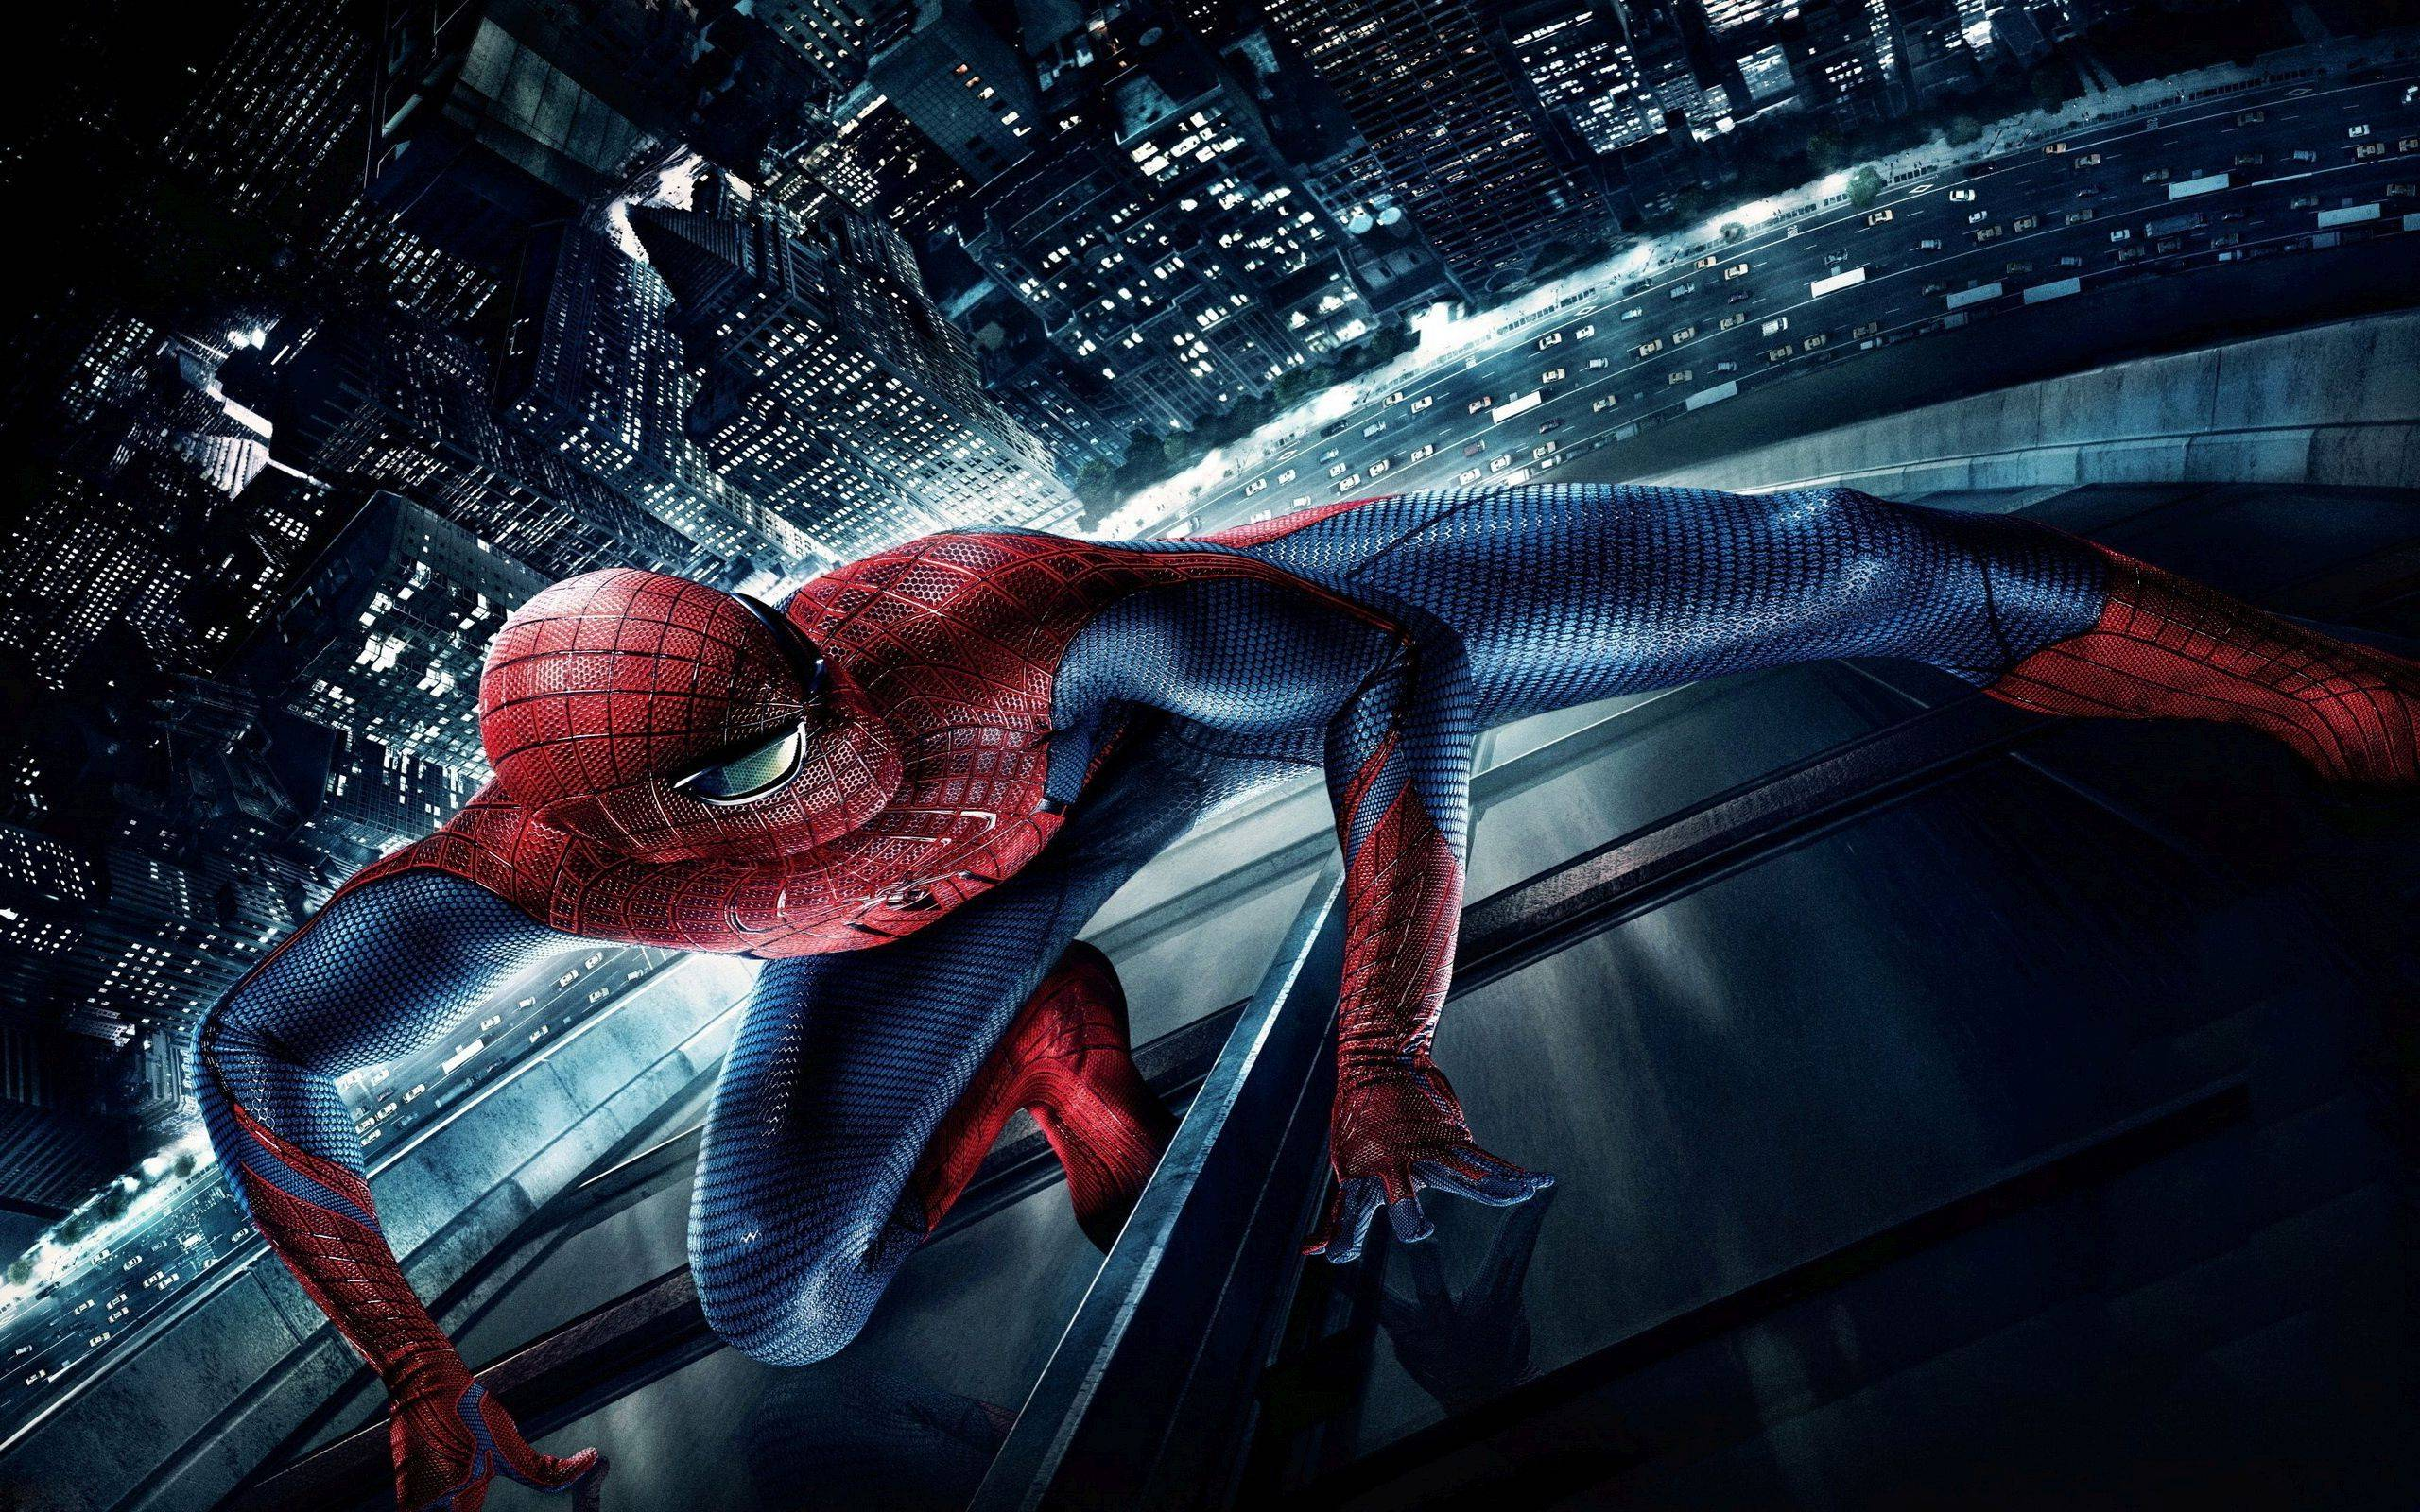 Hd wallpaper wap - Amazing Spider Man Hd Wallpapers Download 9397 Full Hd Wallpaper